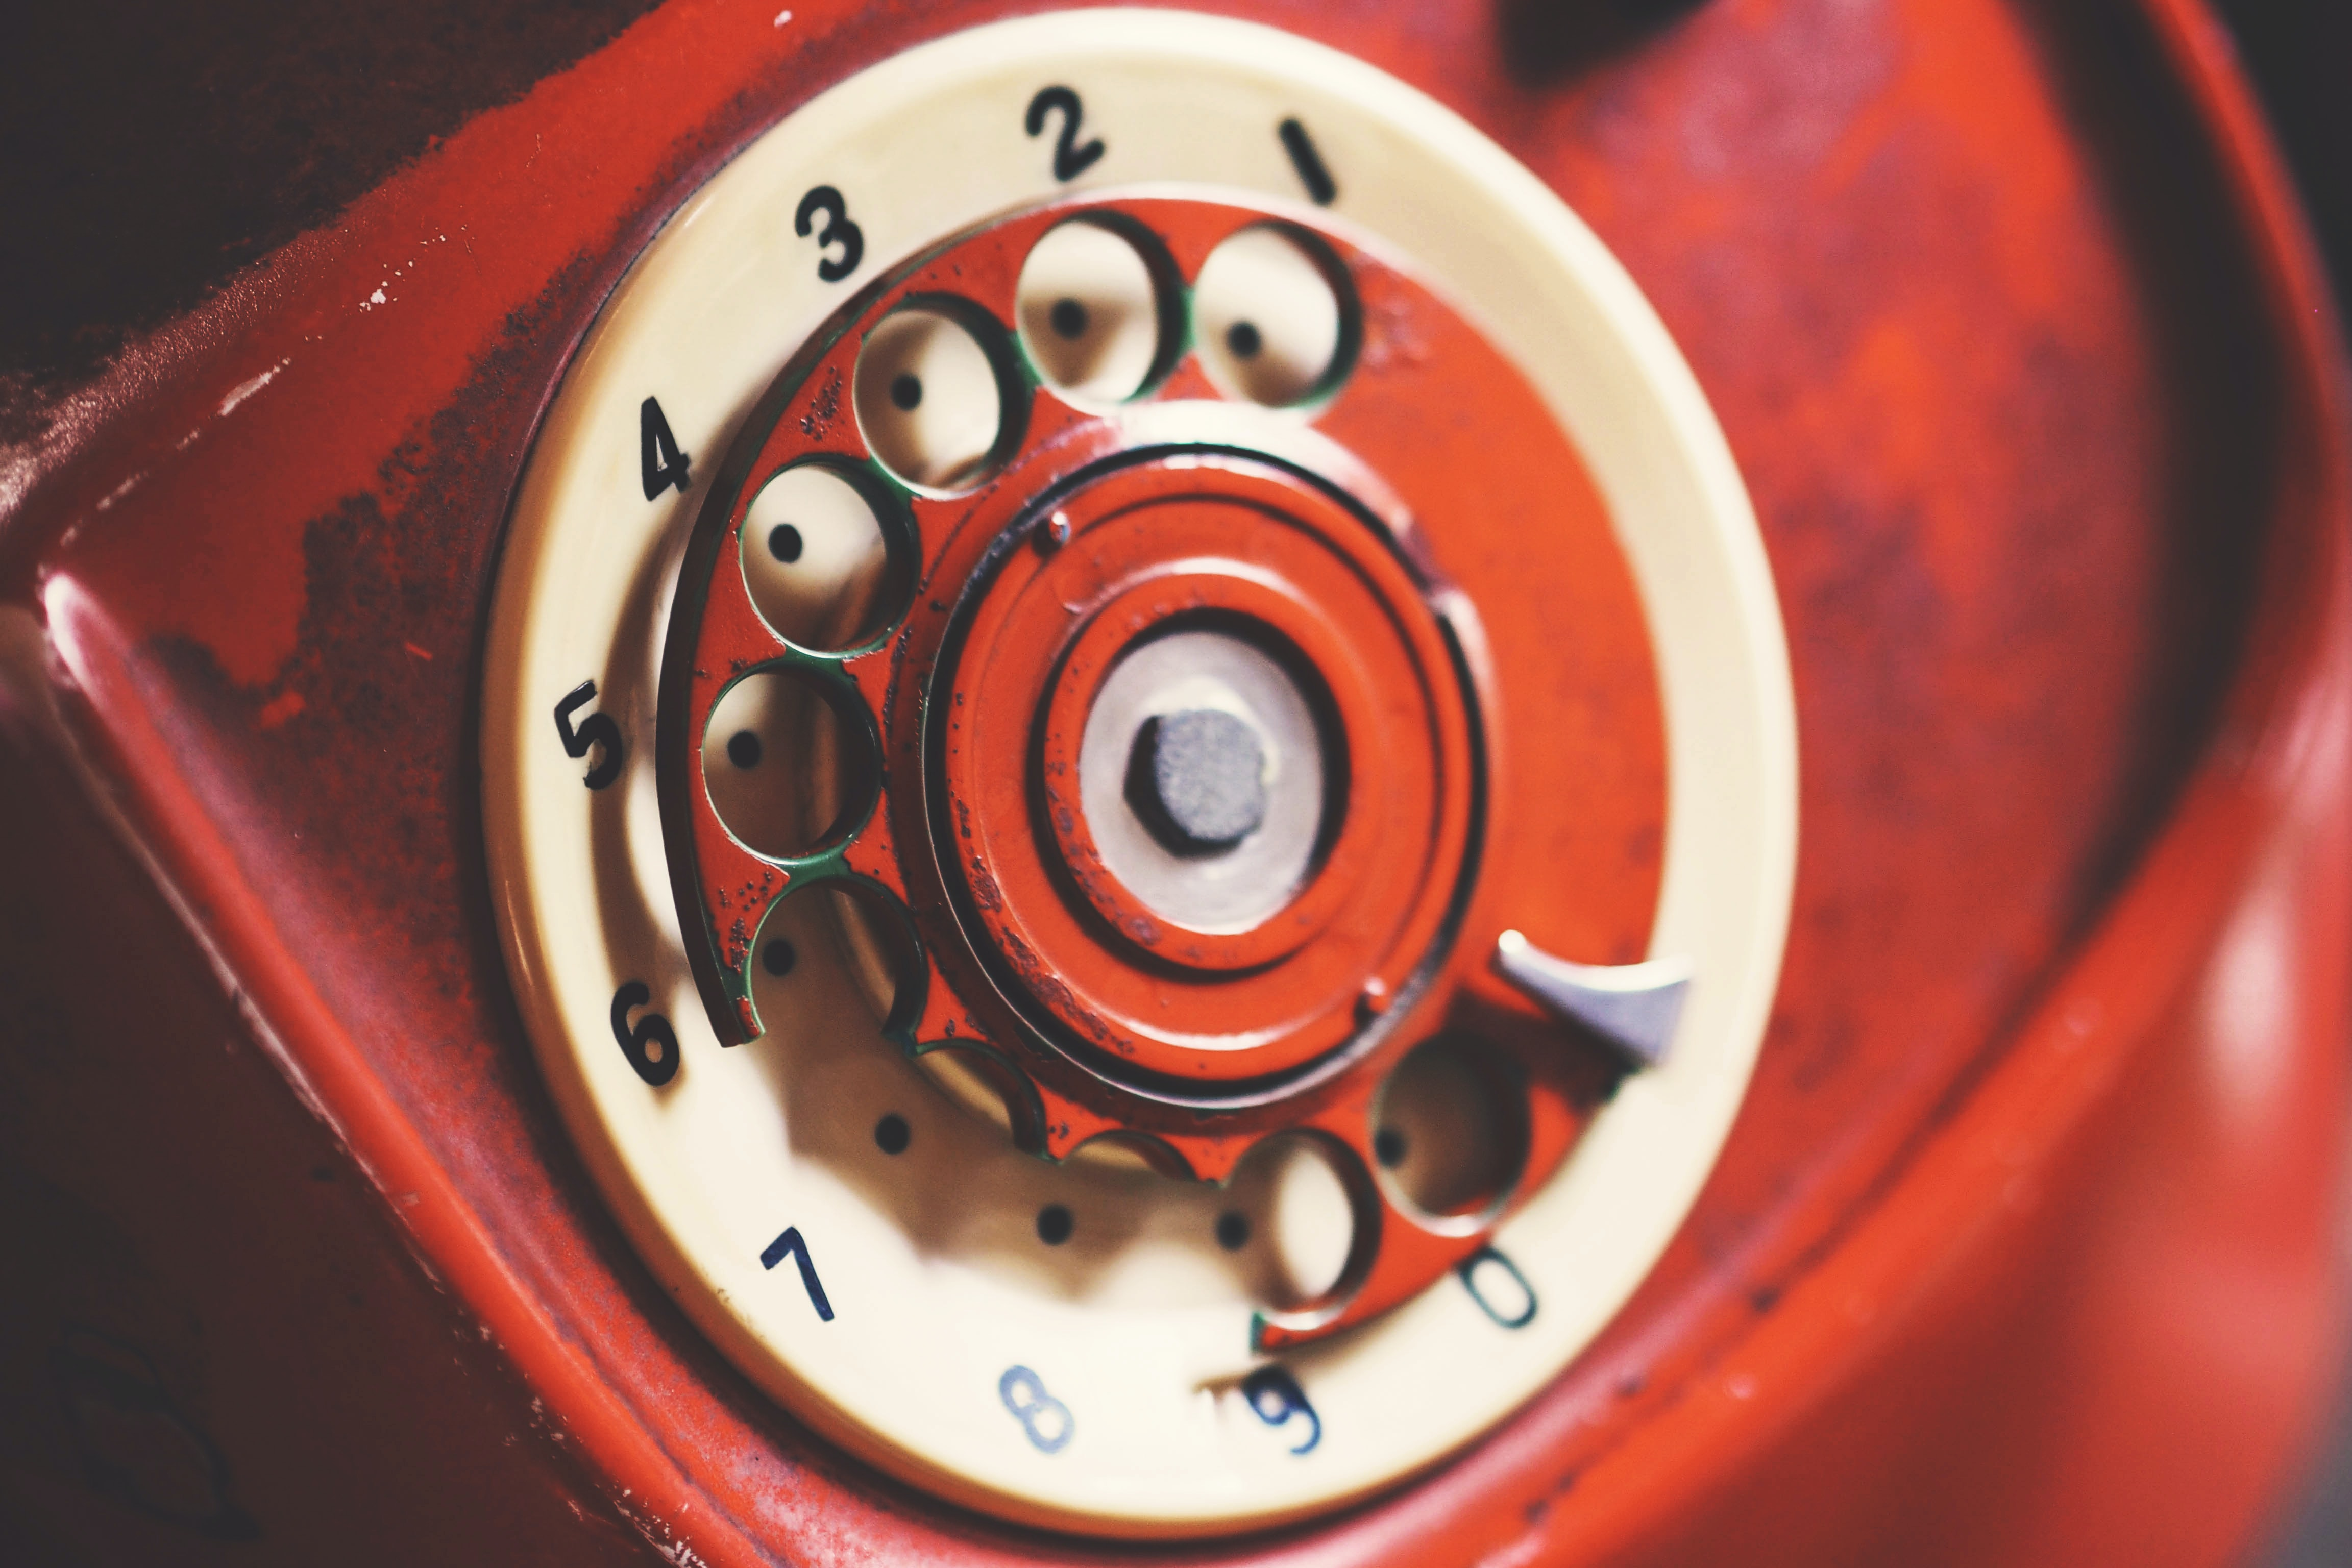 focus photo of red and white rotary telephone